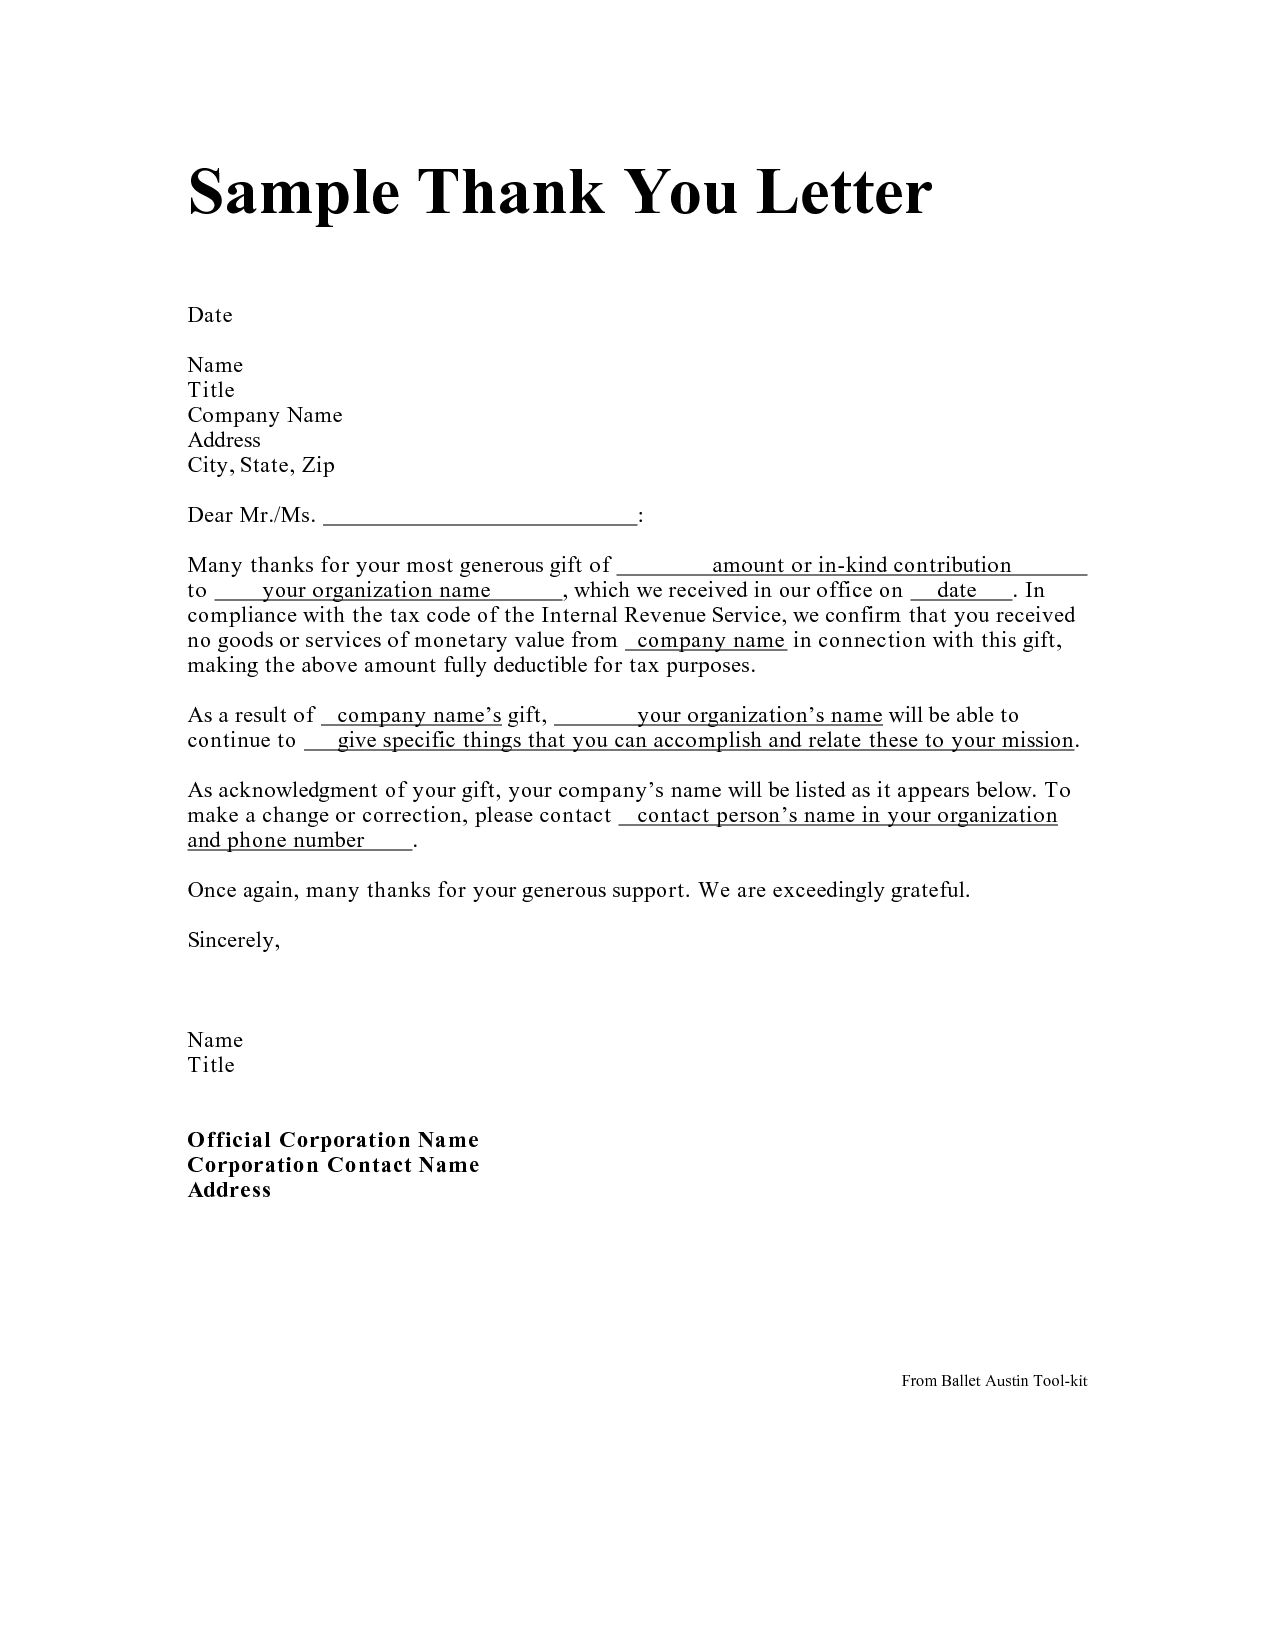 45+ thank you letter example templates | free & premium templates.